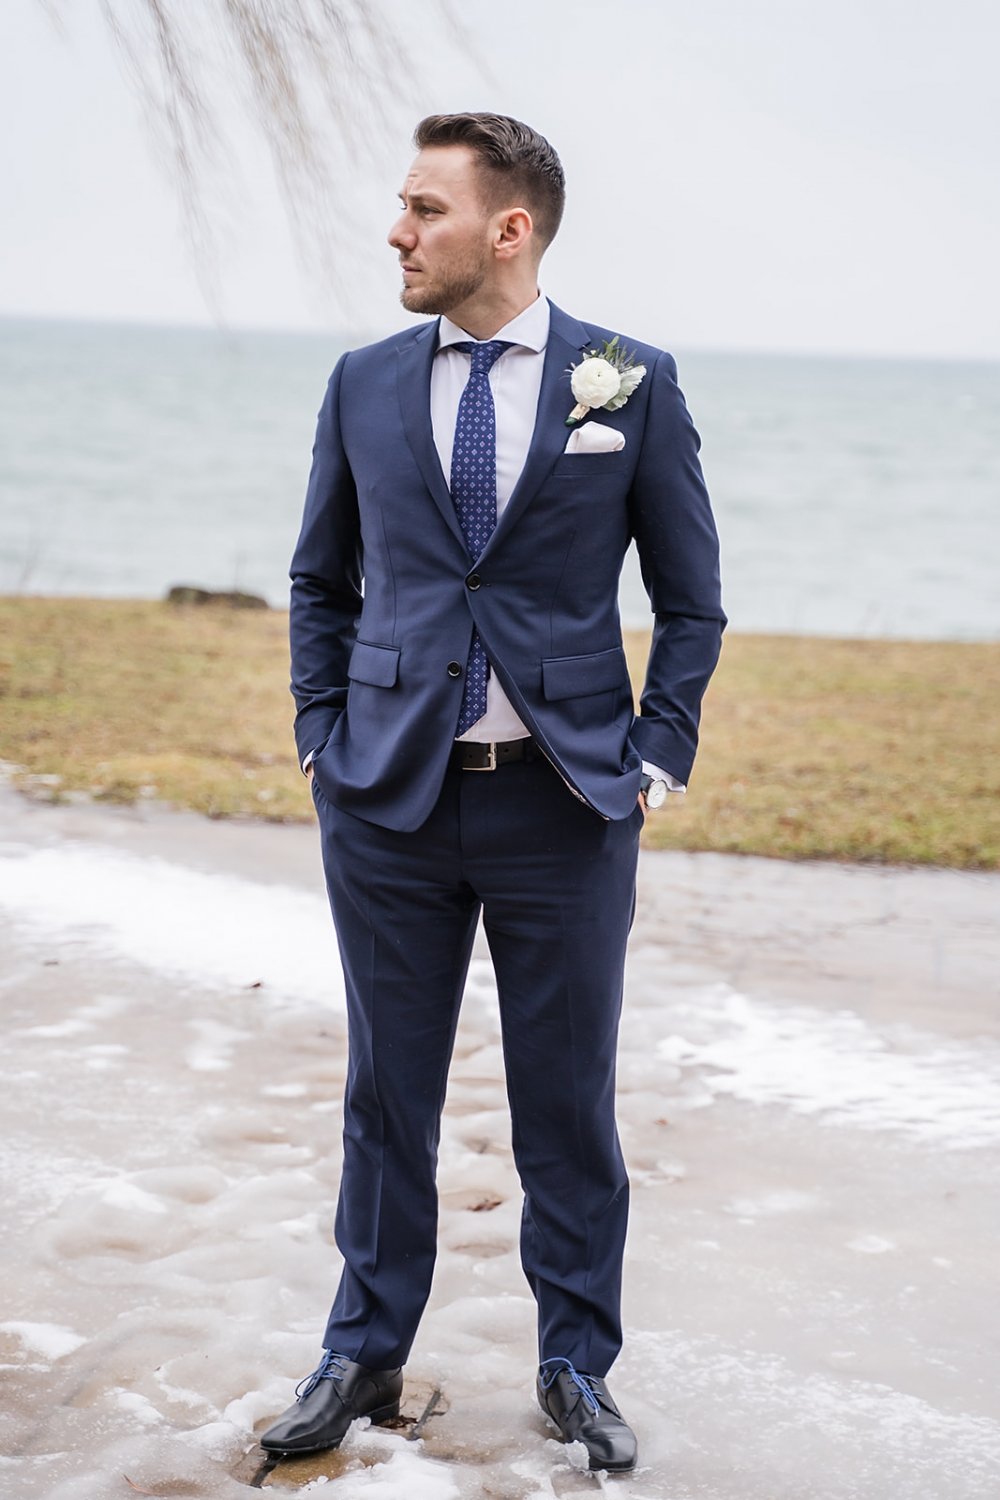 groom standing outside with his hands in his pockets as he waits for his bride